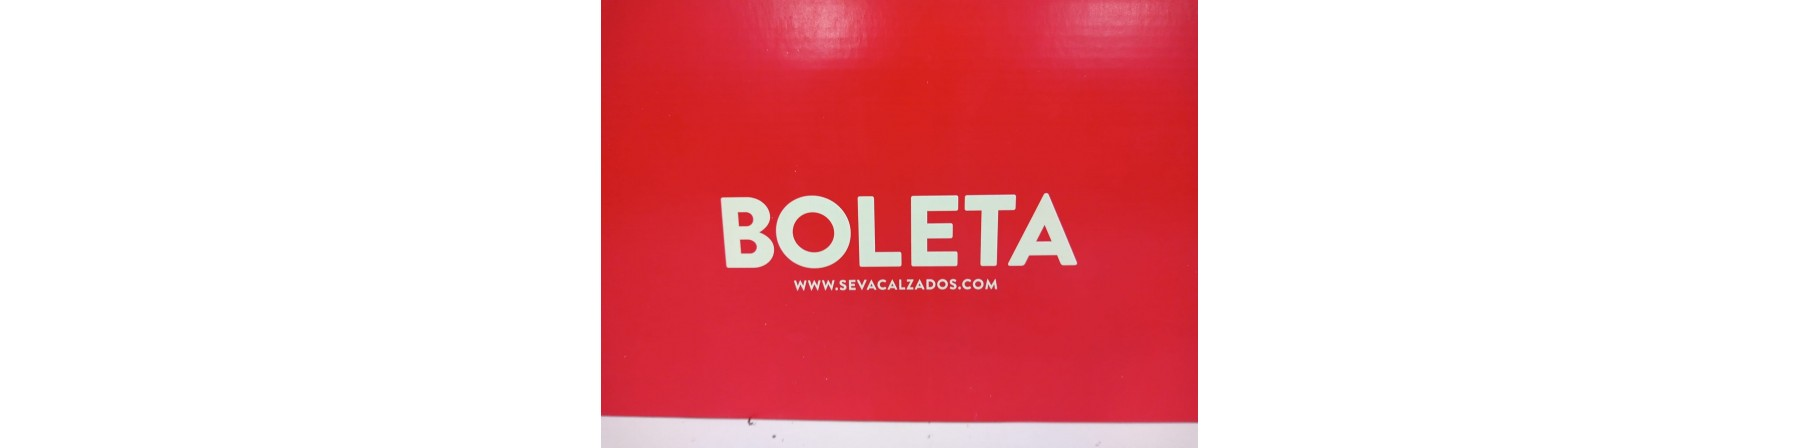 BOLETA SHOES